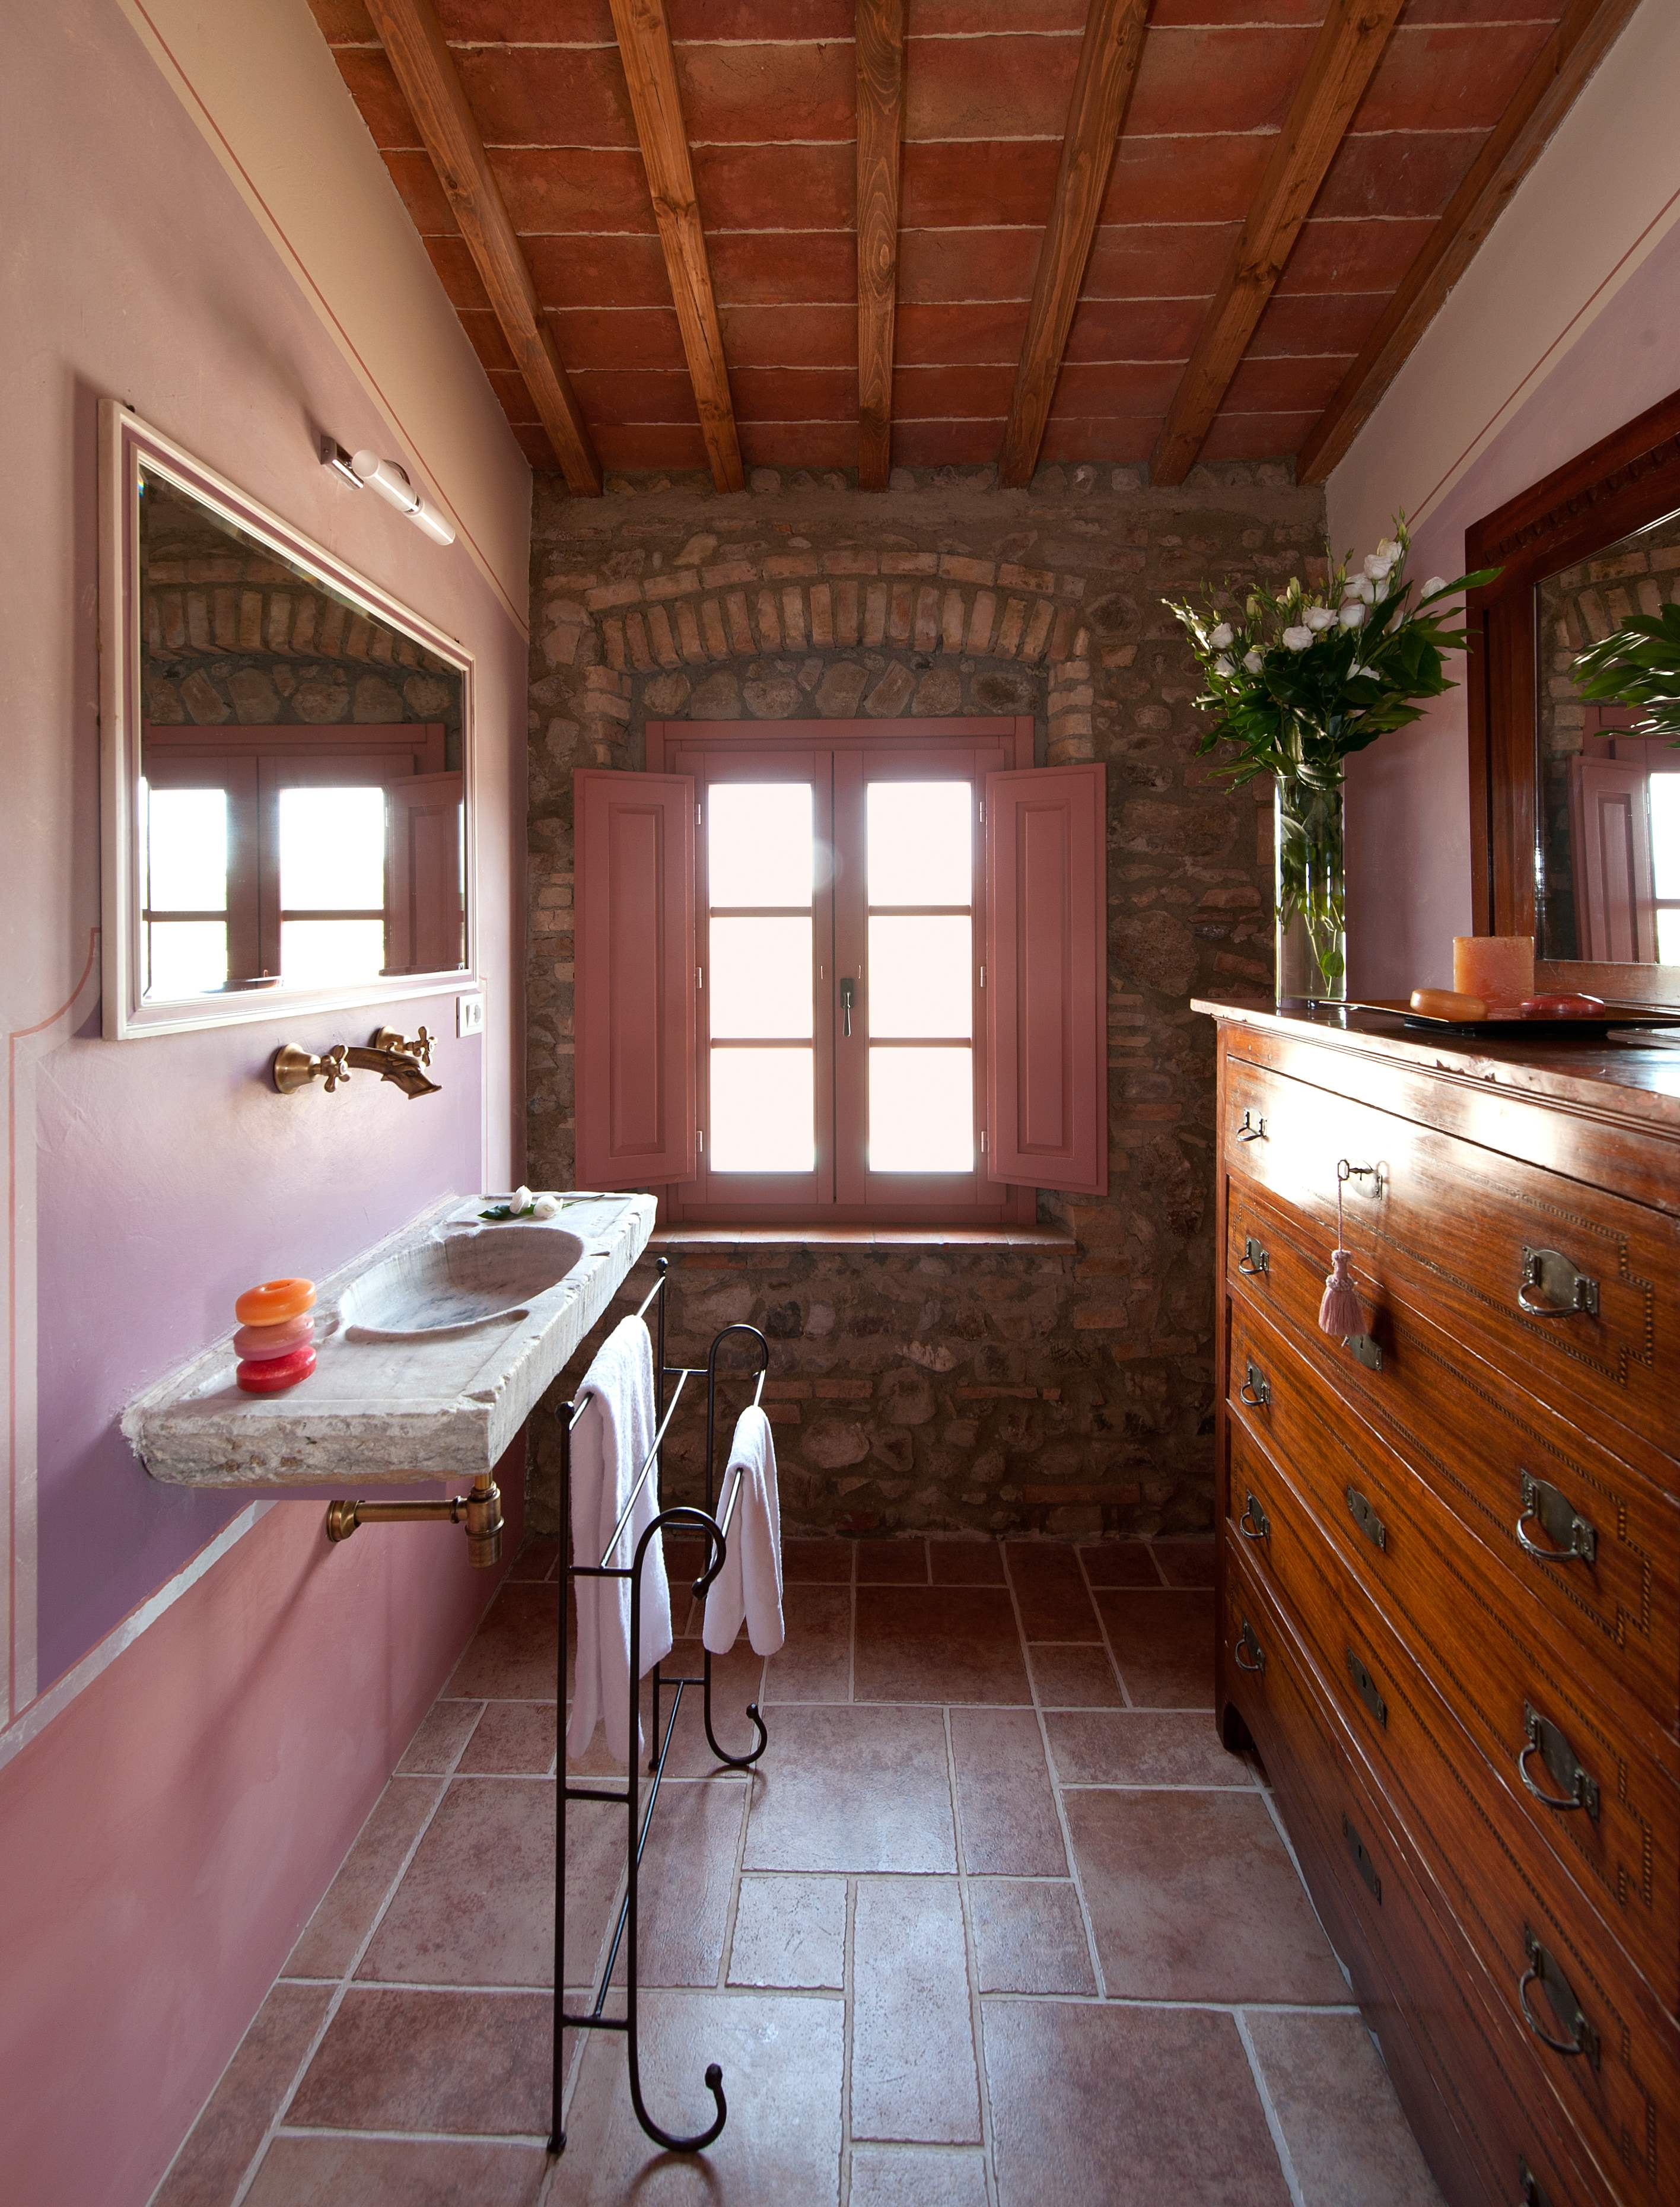 Podere I Gotti, 5 bedroom villa in Tuscany Coast, Tuscany Photo #21